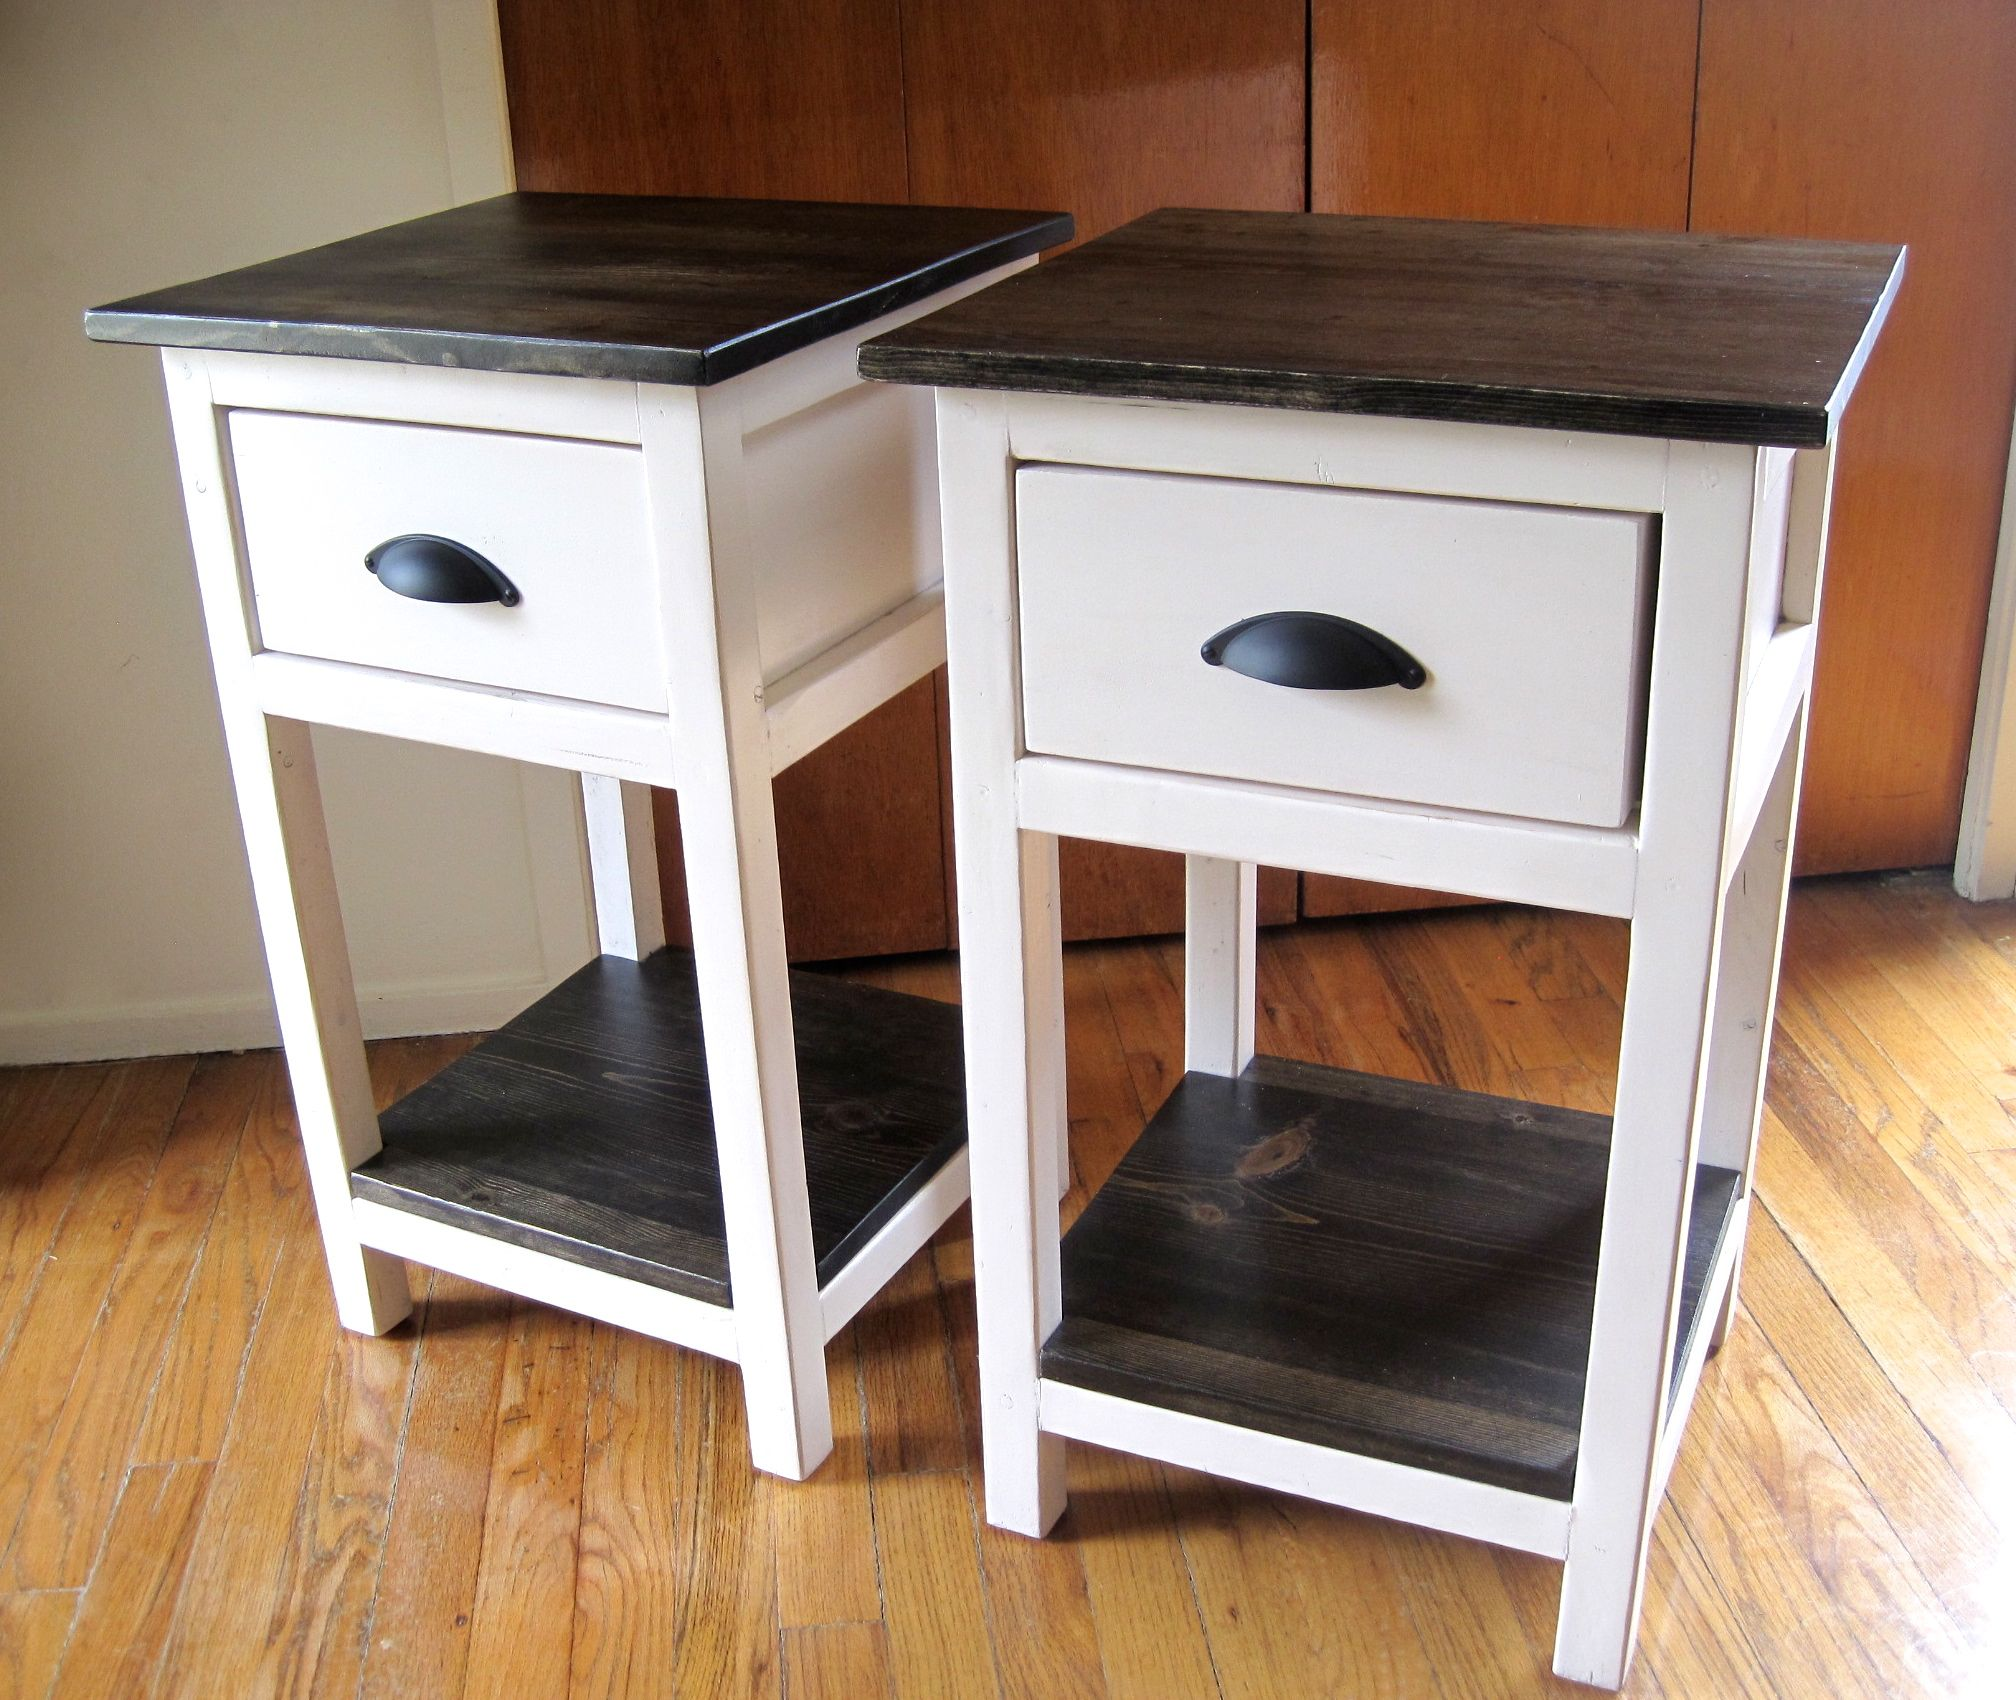 ana white build a mini farmhouse bedside table plans free and easy diy project and furniture. Black Bedroom Furniture Sets. Home Design Ideas